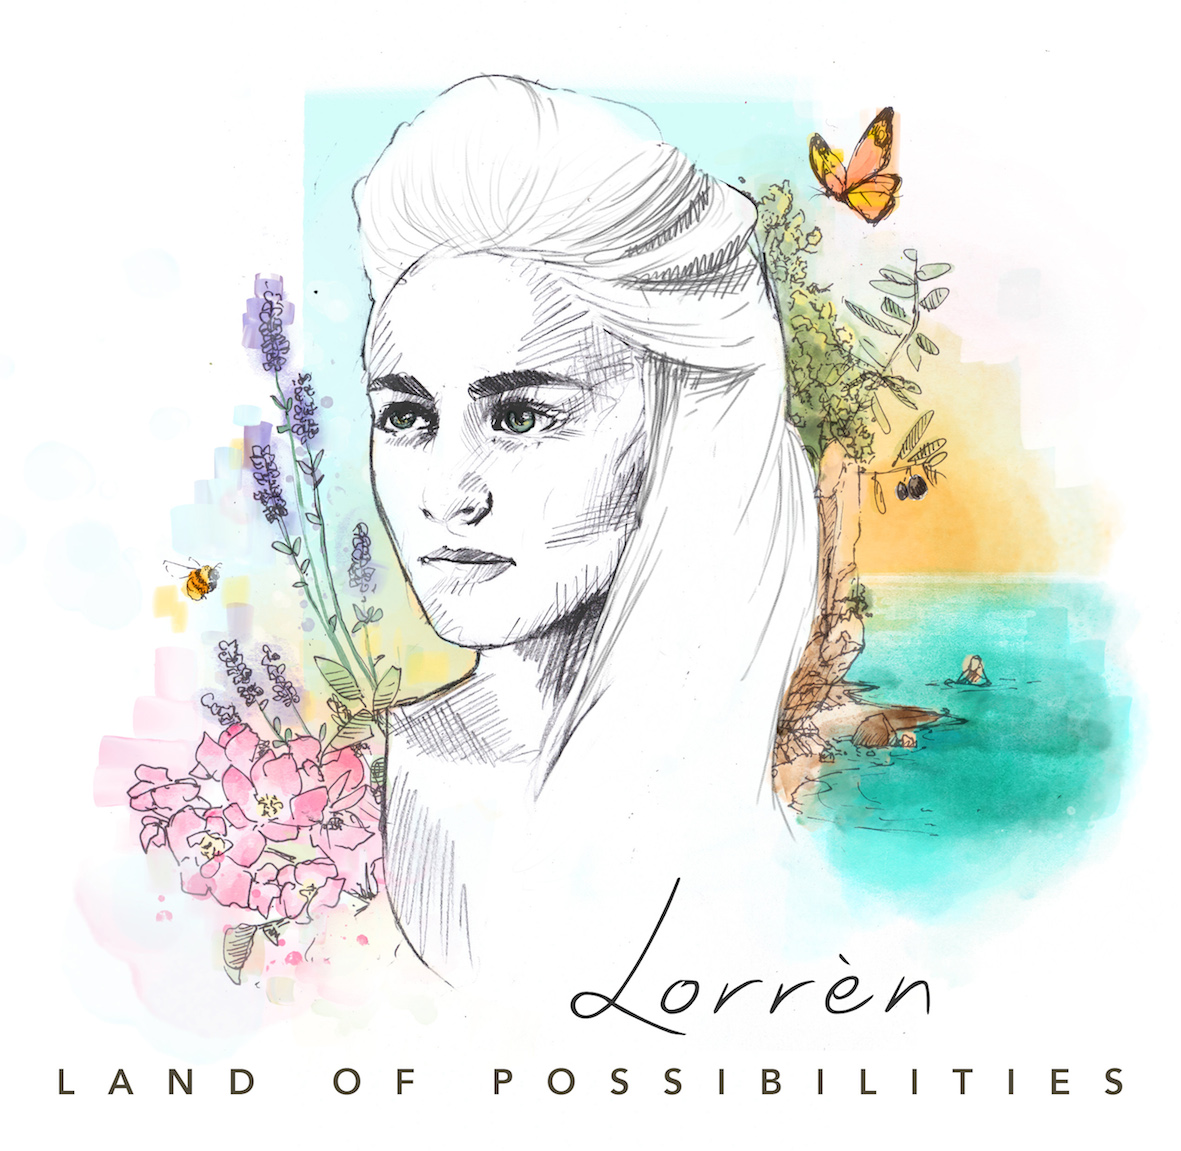 Albumcover Lorren Land of Possibilities door Egon de Regt KLEIN